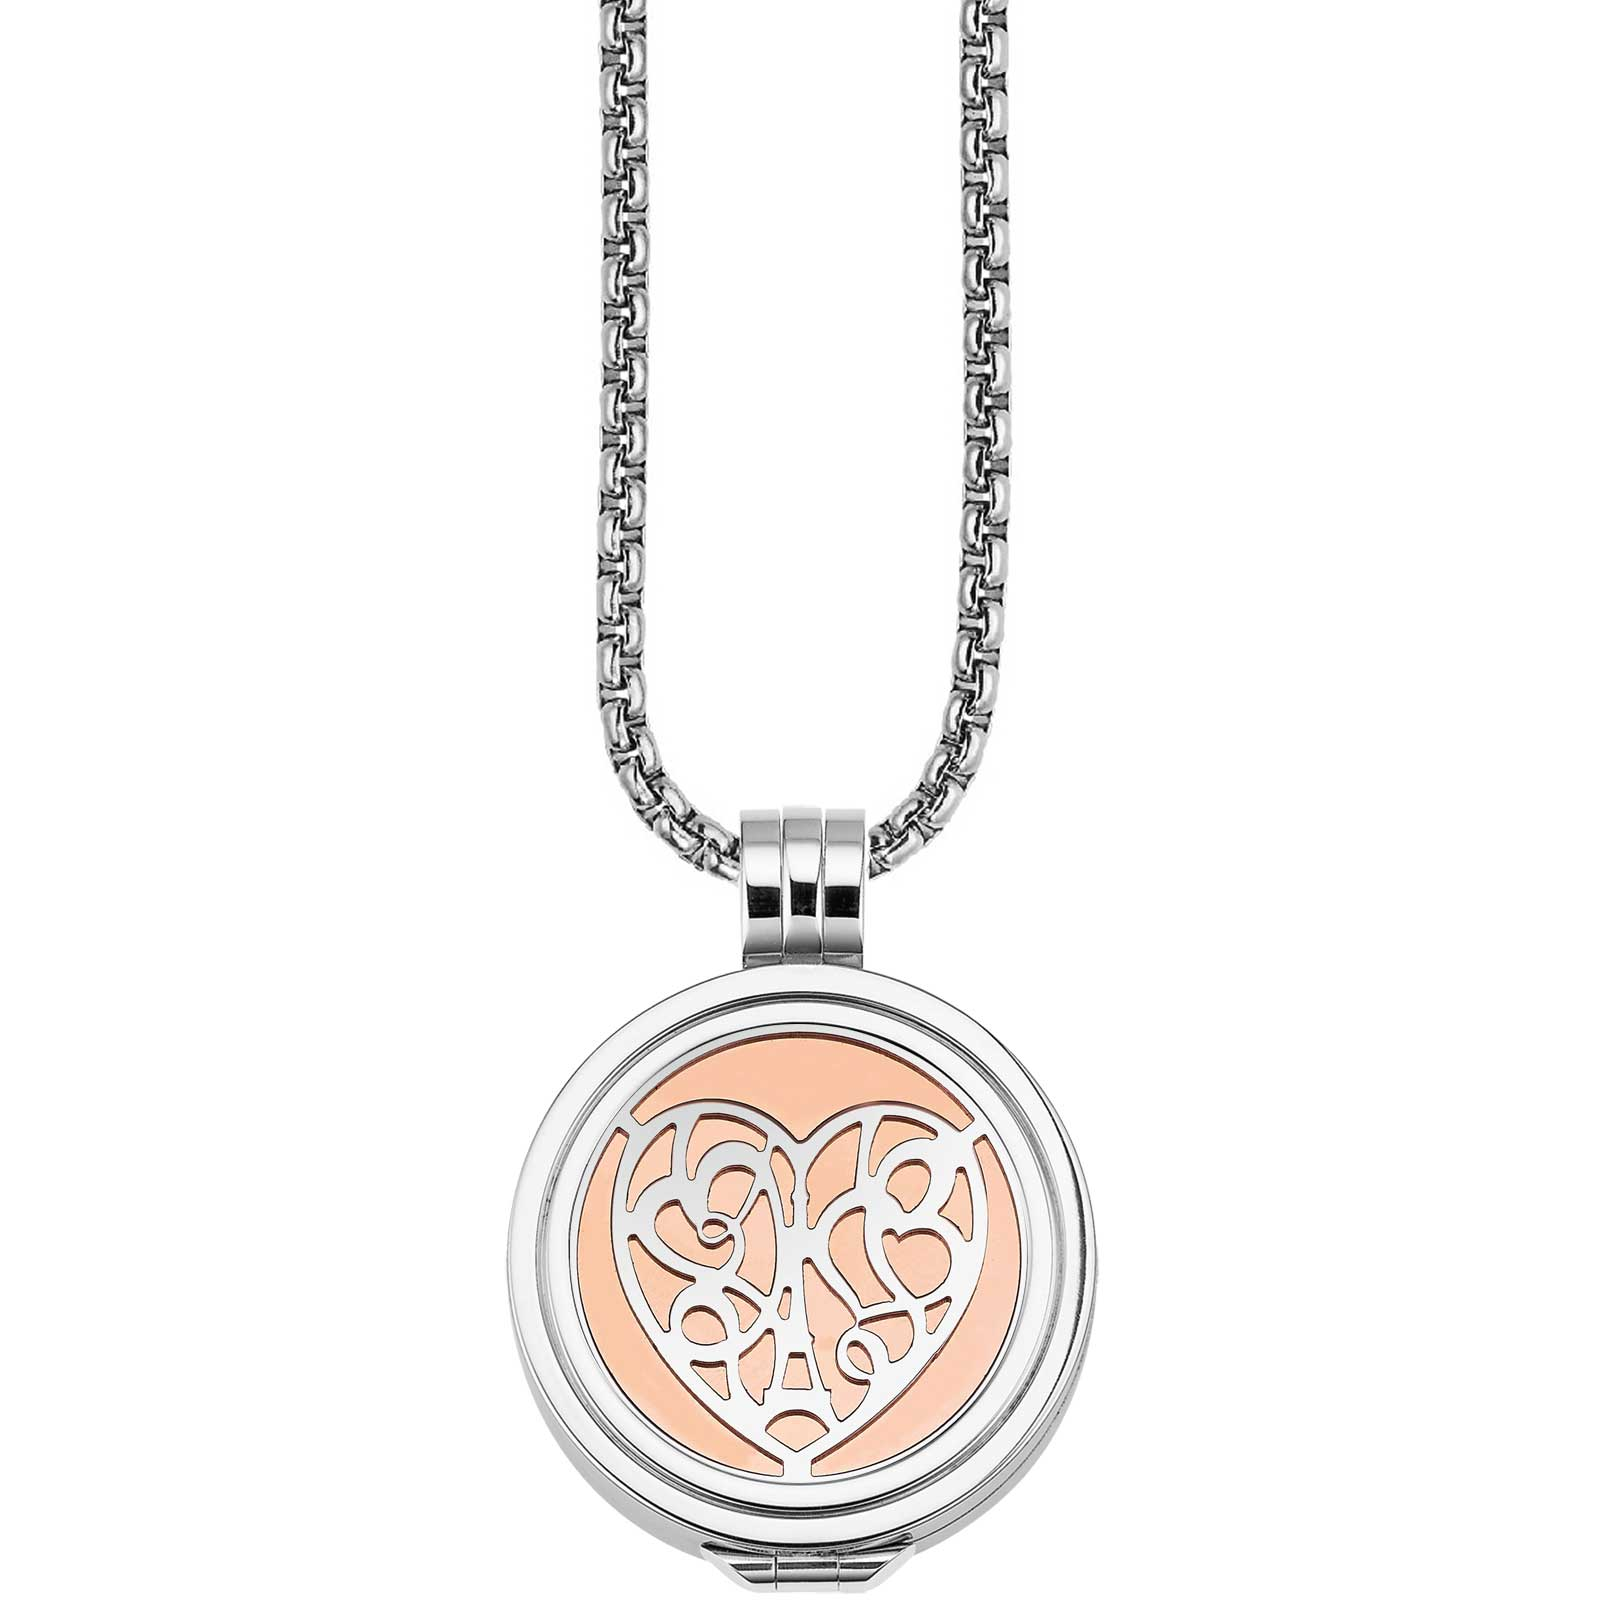 CS008_Coin-Fassung_CS249_CS250_Coin_rose_mit_Kette_1